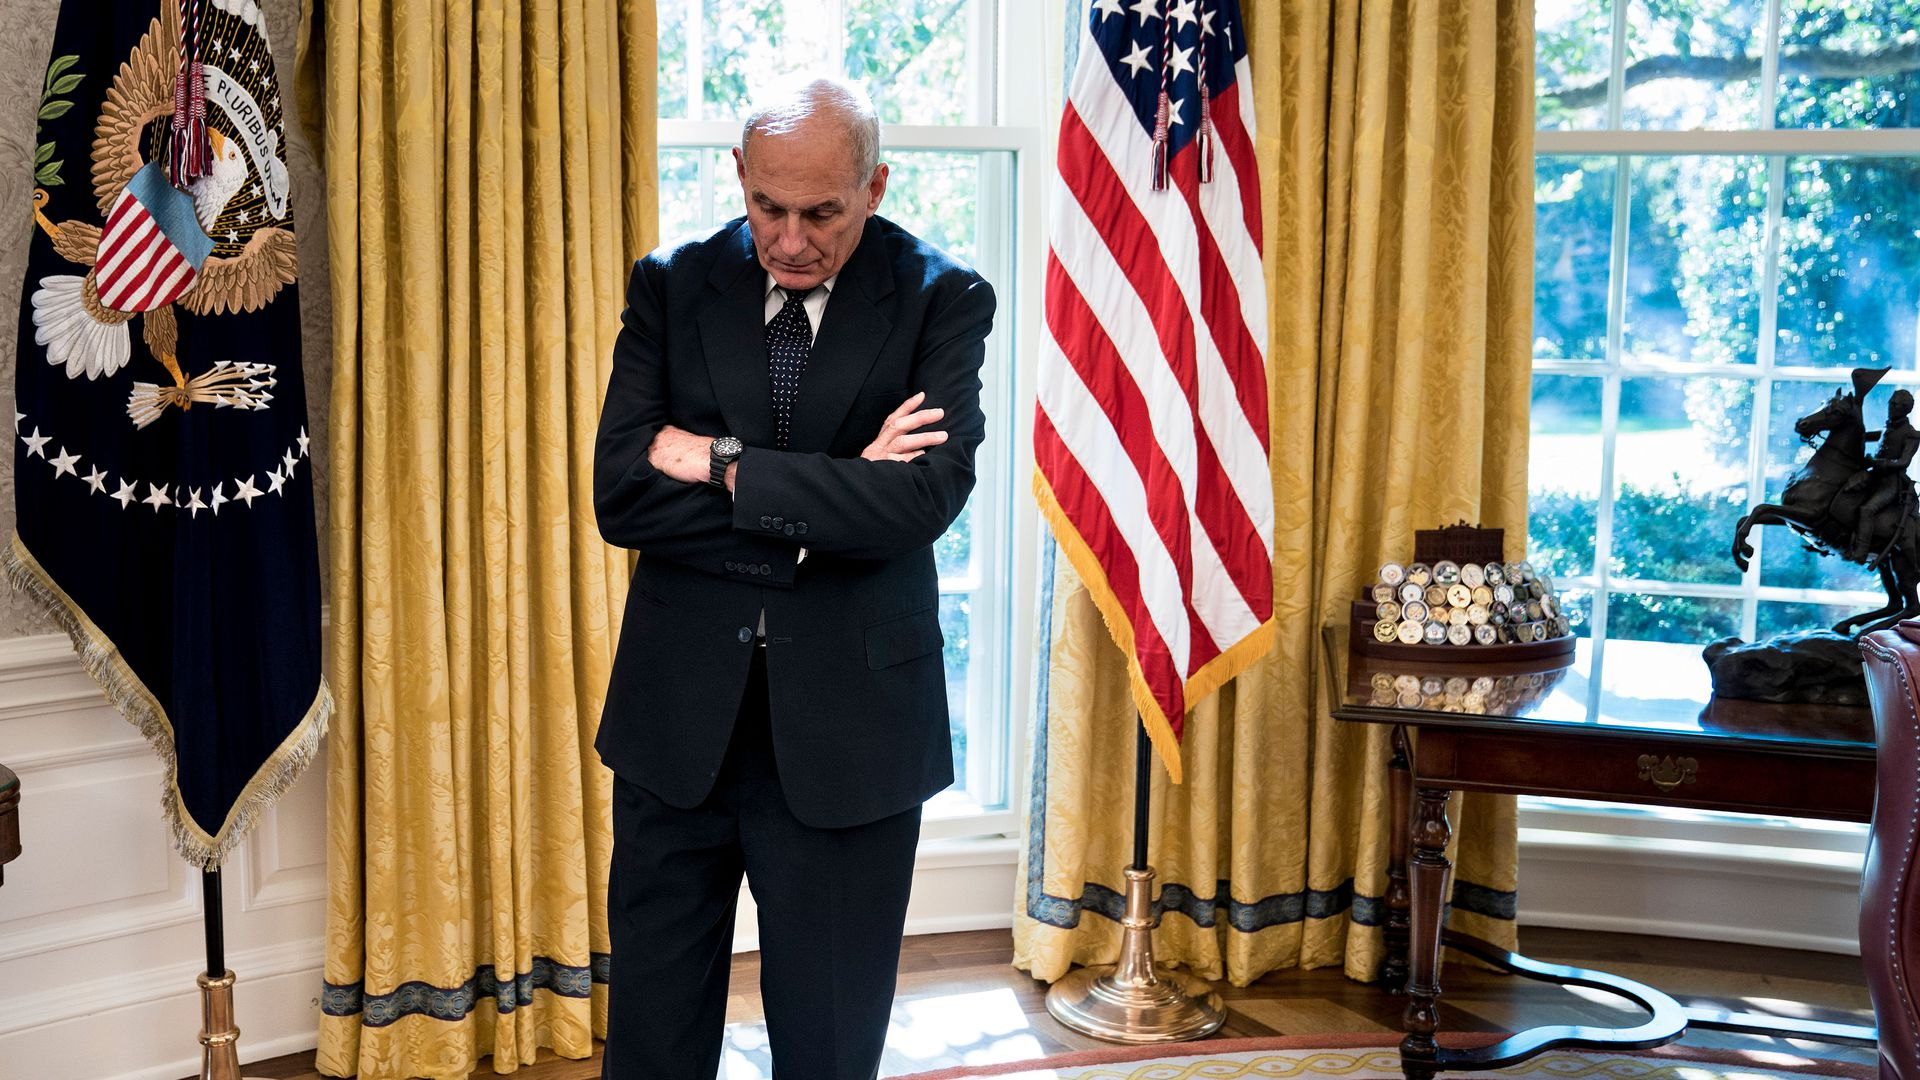 White House Chief of Staff John Kelly hangs his head while standing alone in the Oval Office of the White House